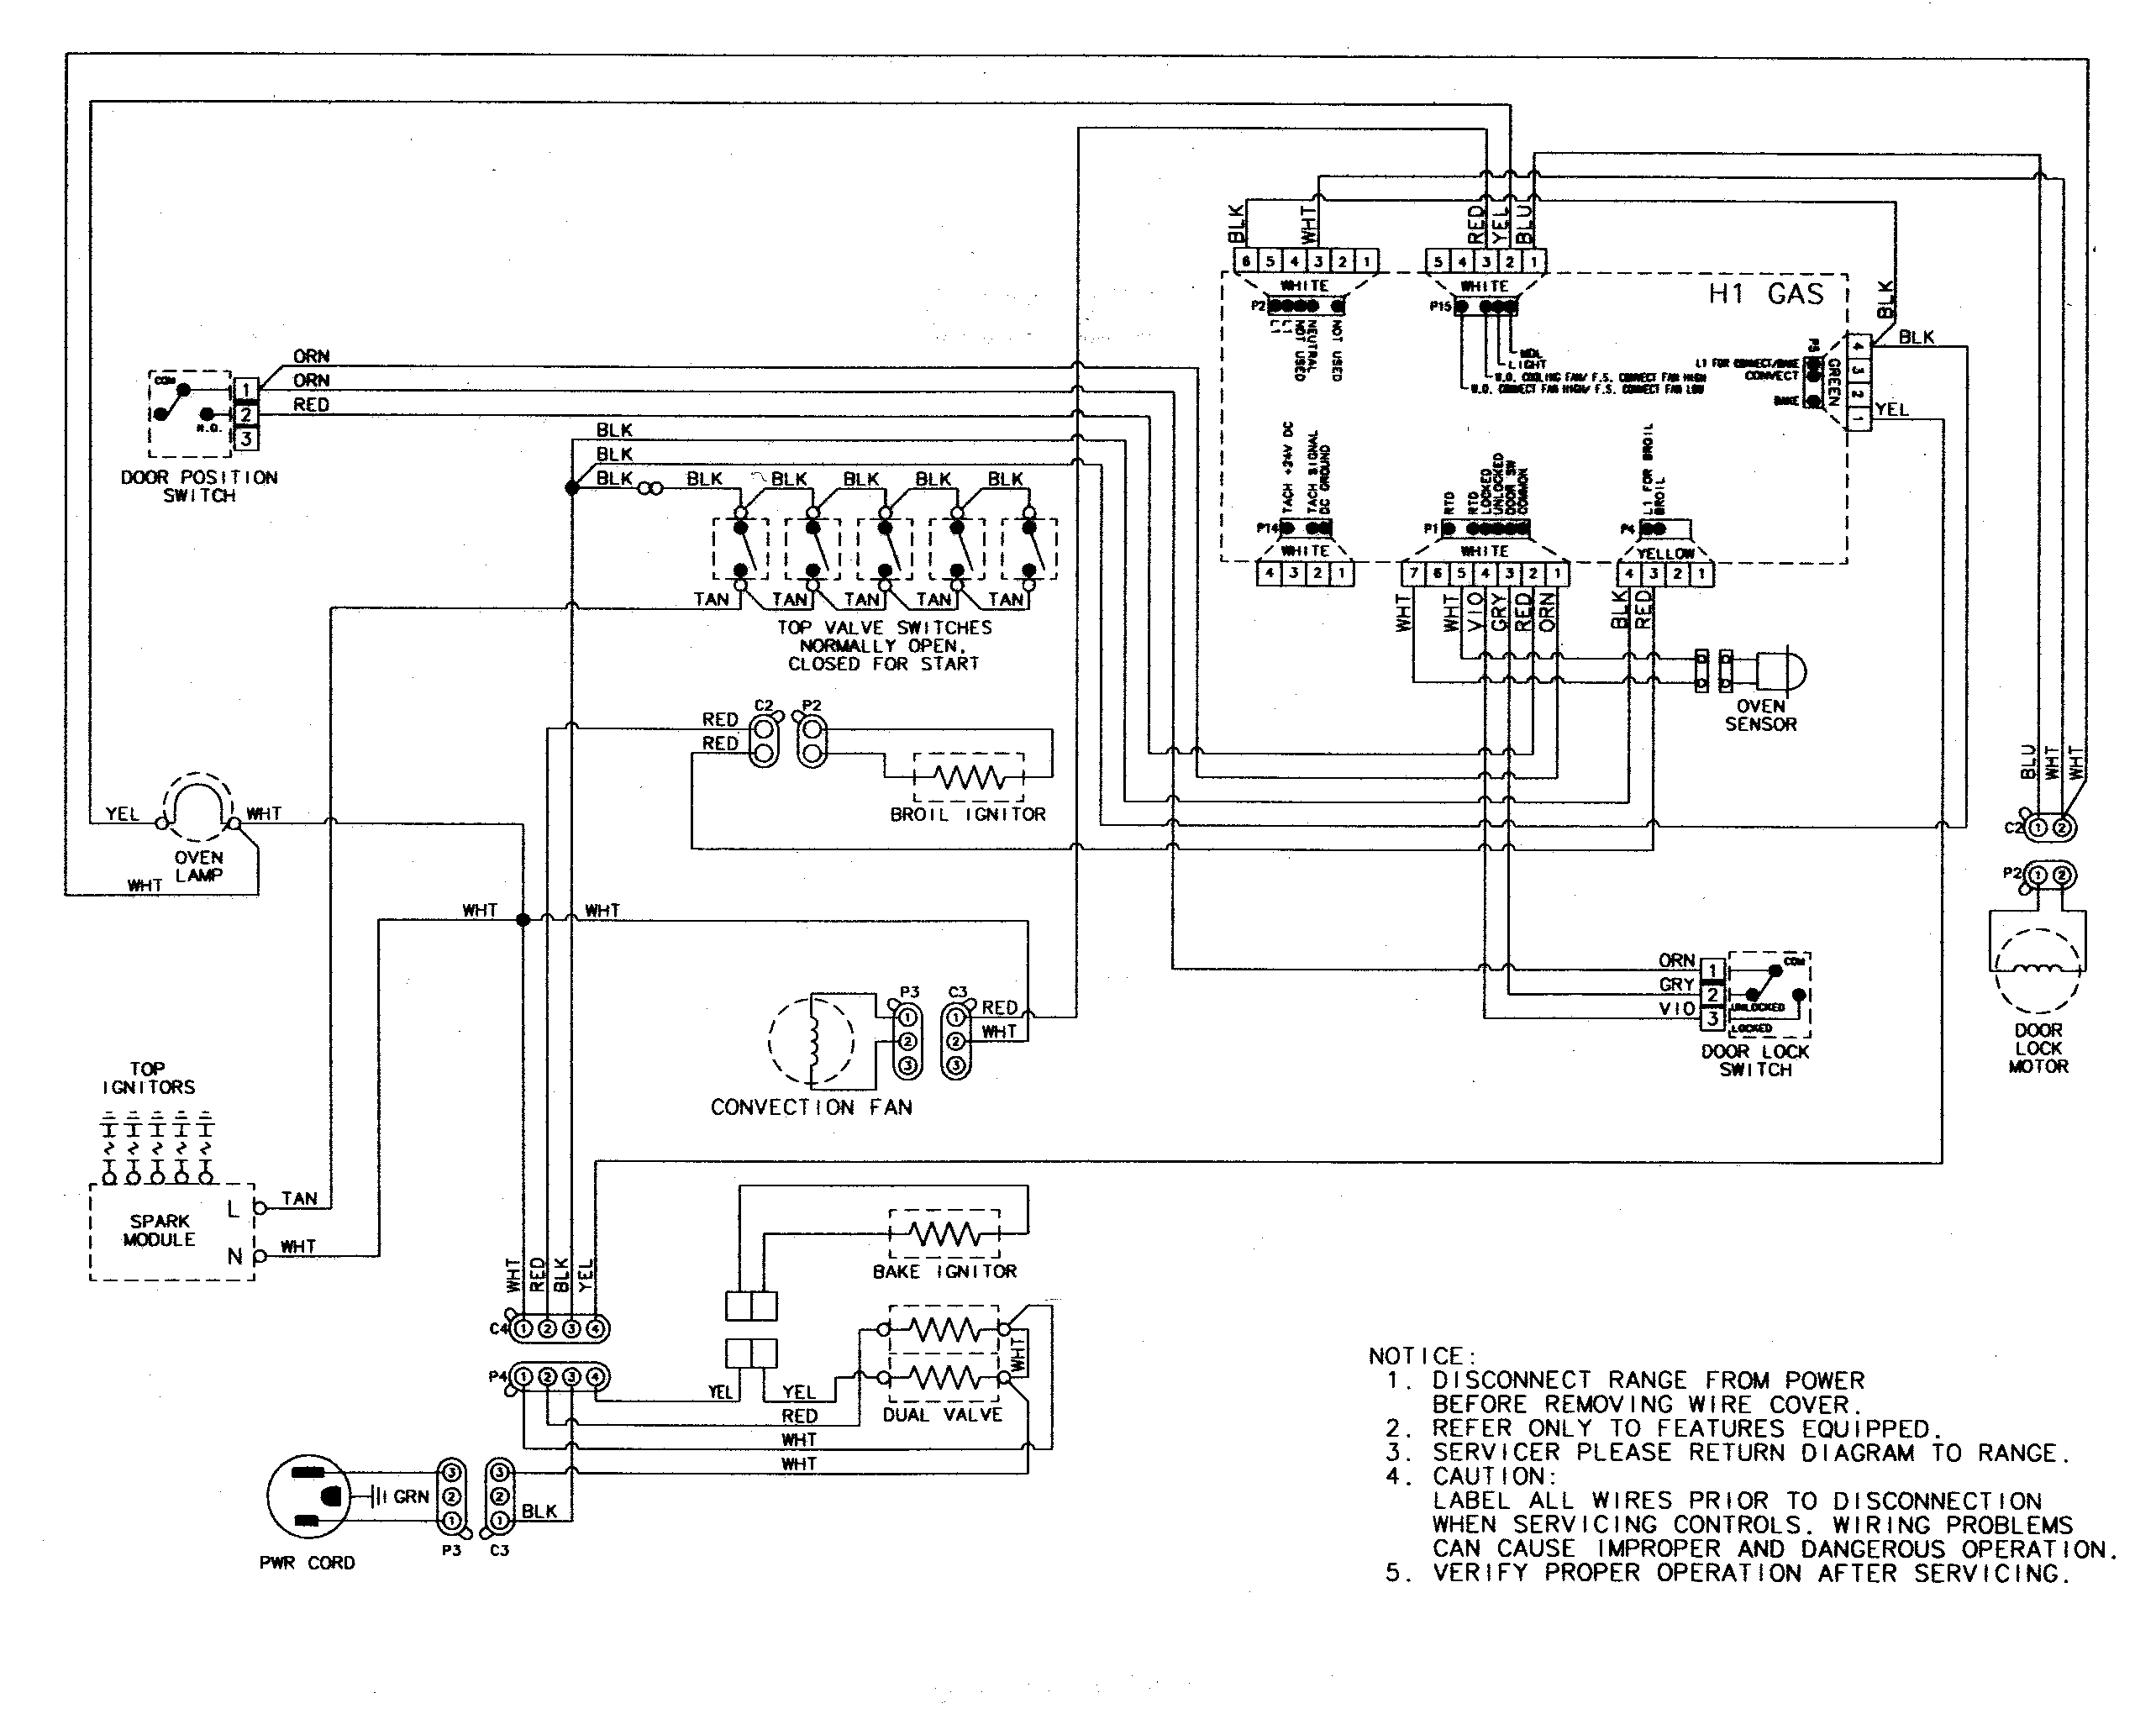 Diagram  Whirlpool Double Oven Wiring Diagram Full